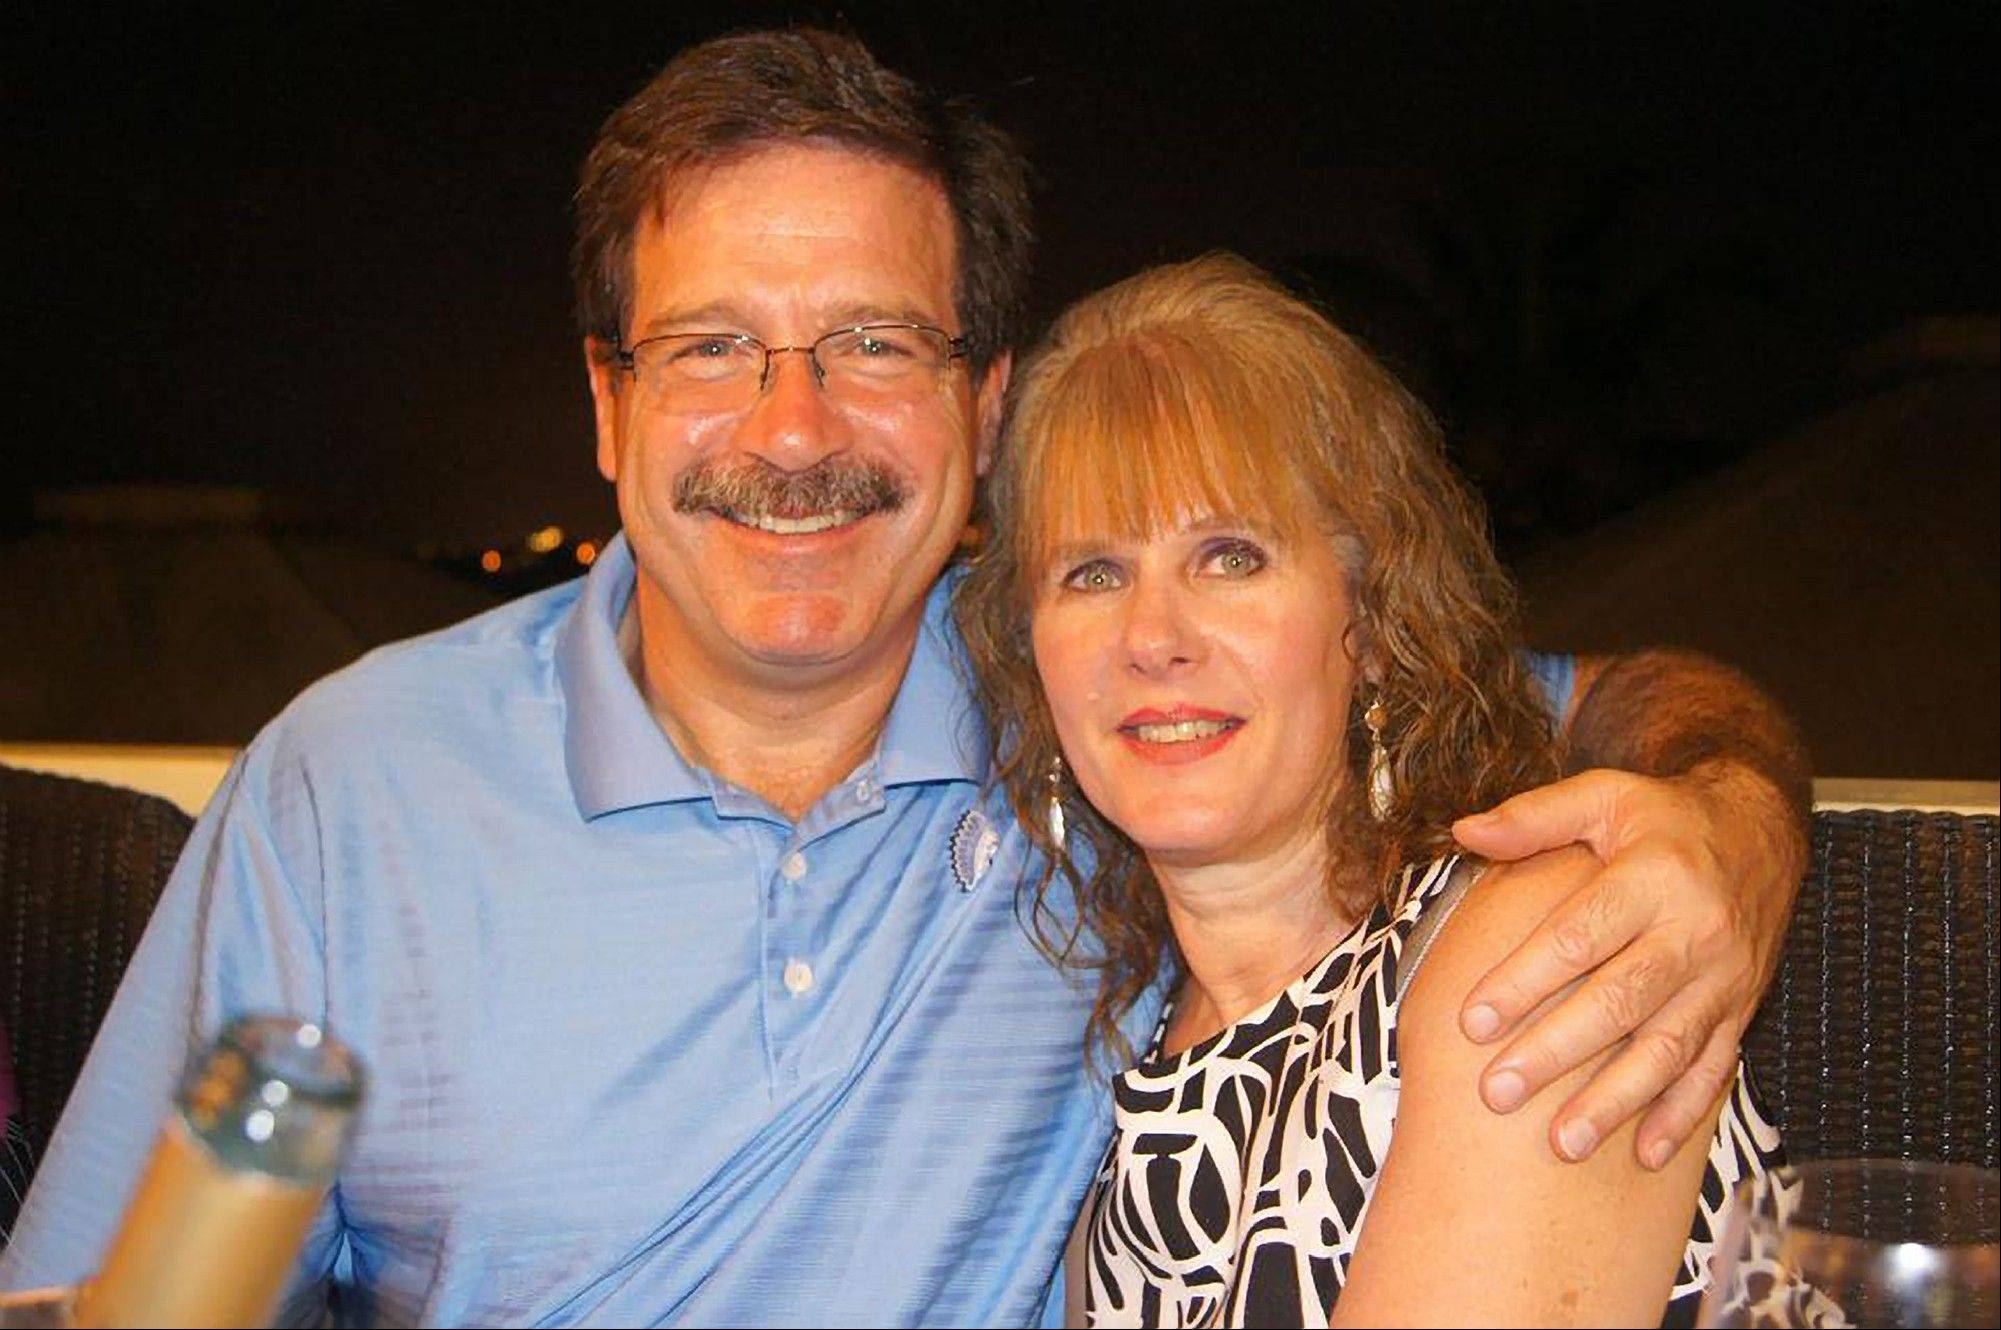 In this undated photo provided by Mark Sherlach, Mark Sherlach and his wife, school psychologist Mary Sherlach, pose for a photo. Mary Sherlach was killed Friday, Dec. 14, 2012, when a gunman opened fire at Sandy Hook Elementary School, in Newtown, Conn., killing 26 children and adults at the school.